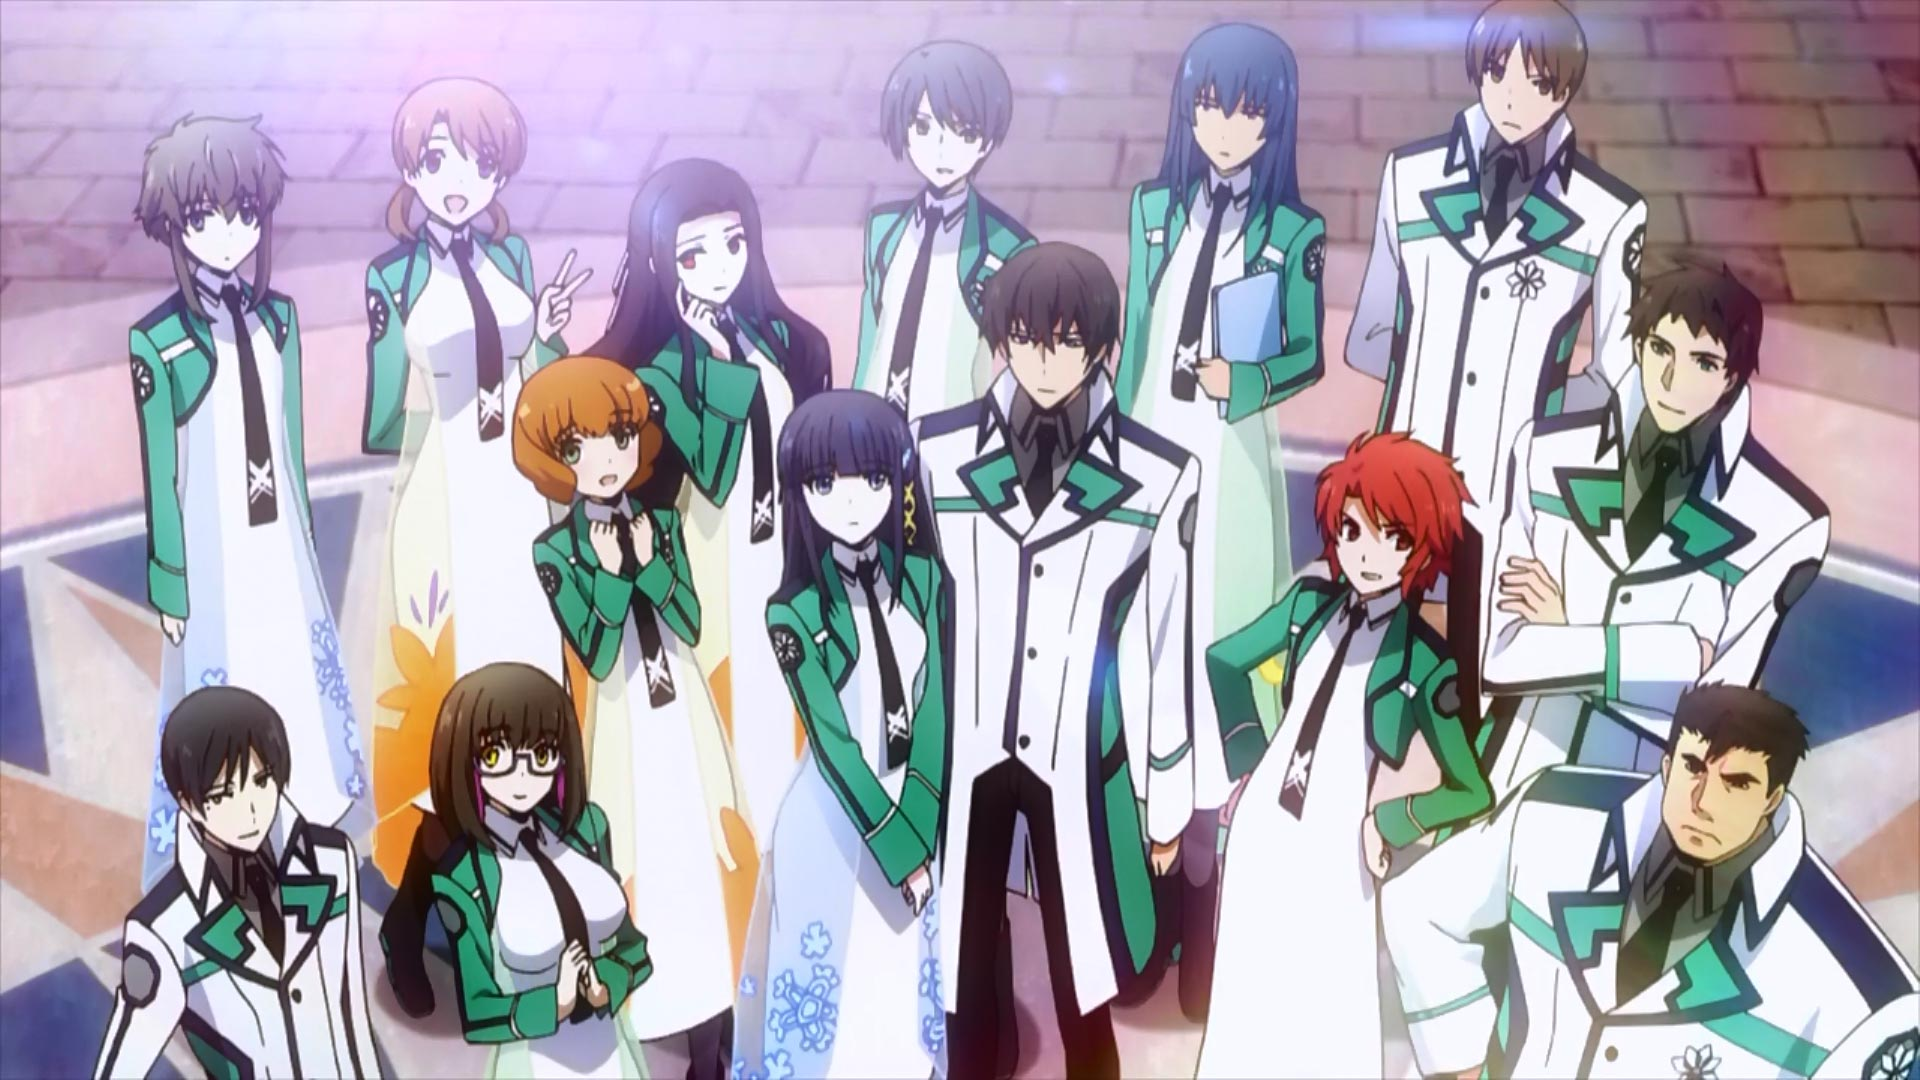 Mahouka Koukou no Rettousei (The Irregular At Magic HighSchool) – Season 1 Review By Racco